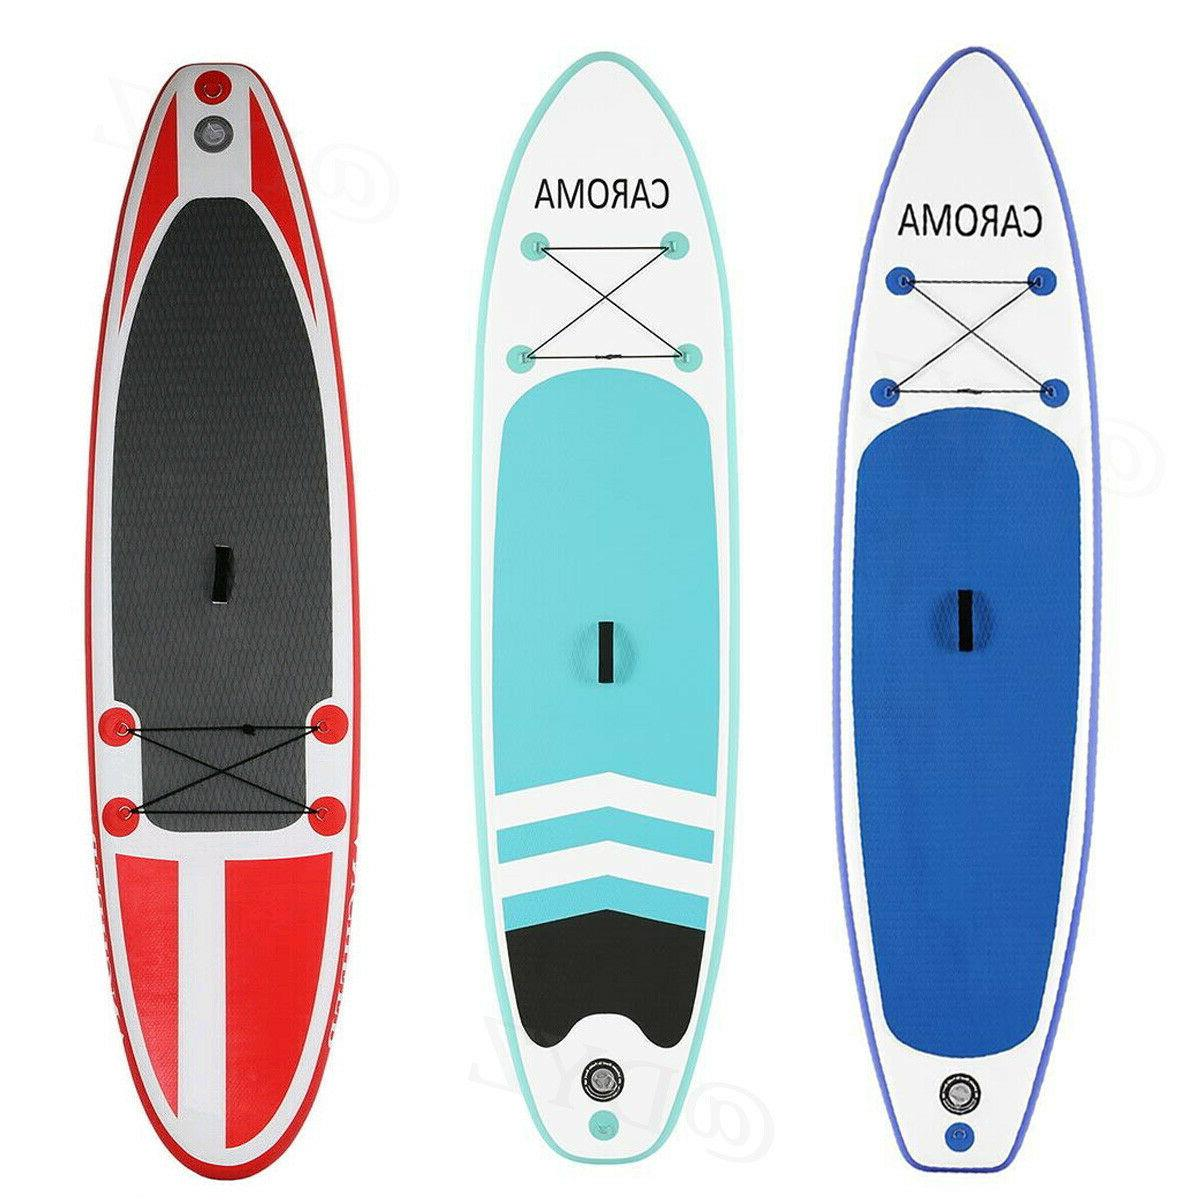 caroma 10 inflatable stand up paddle board